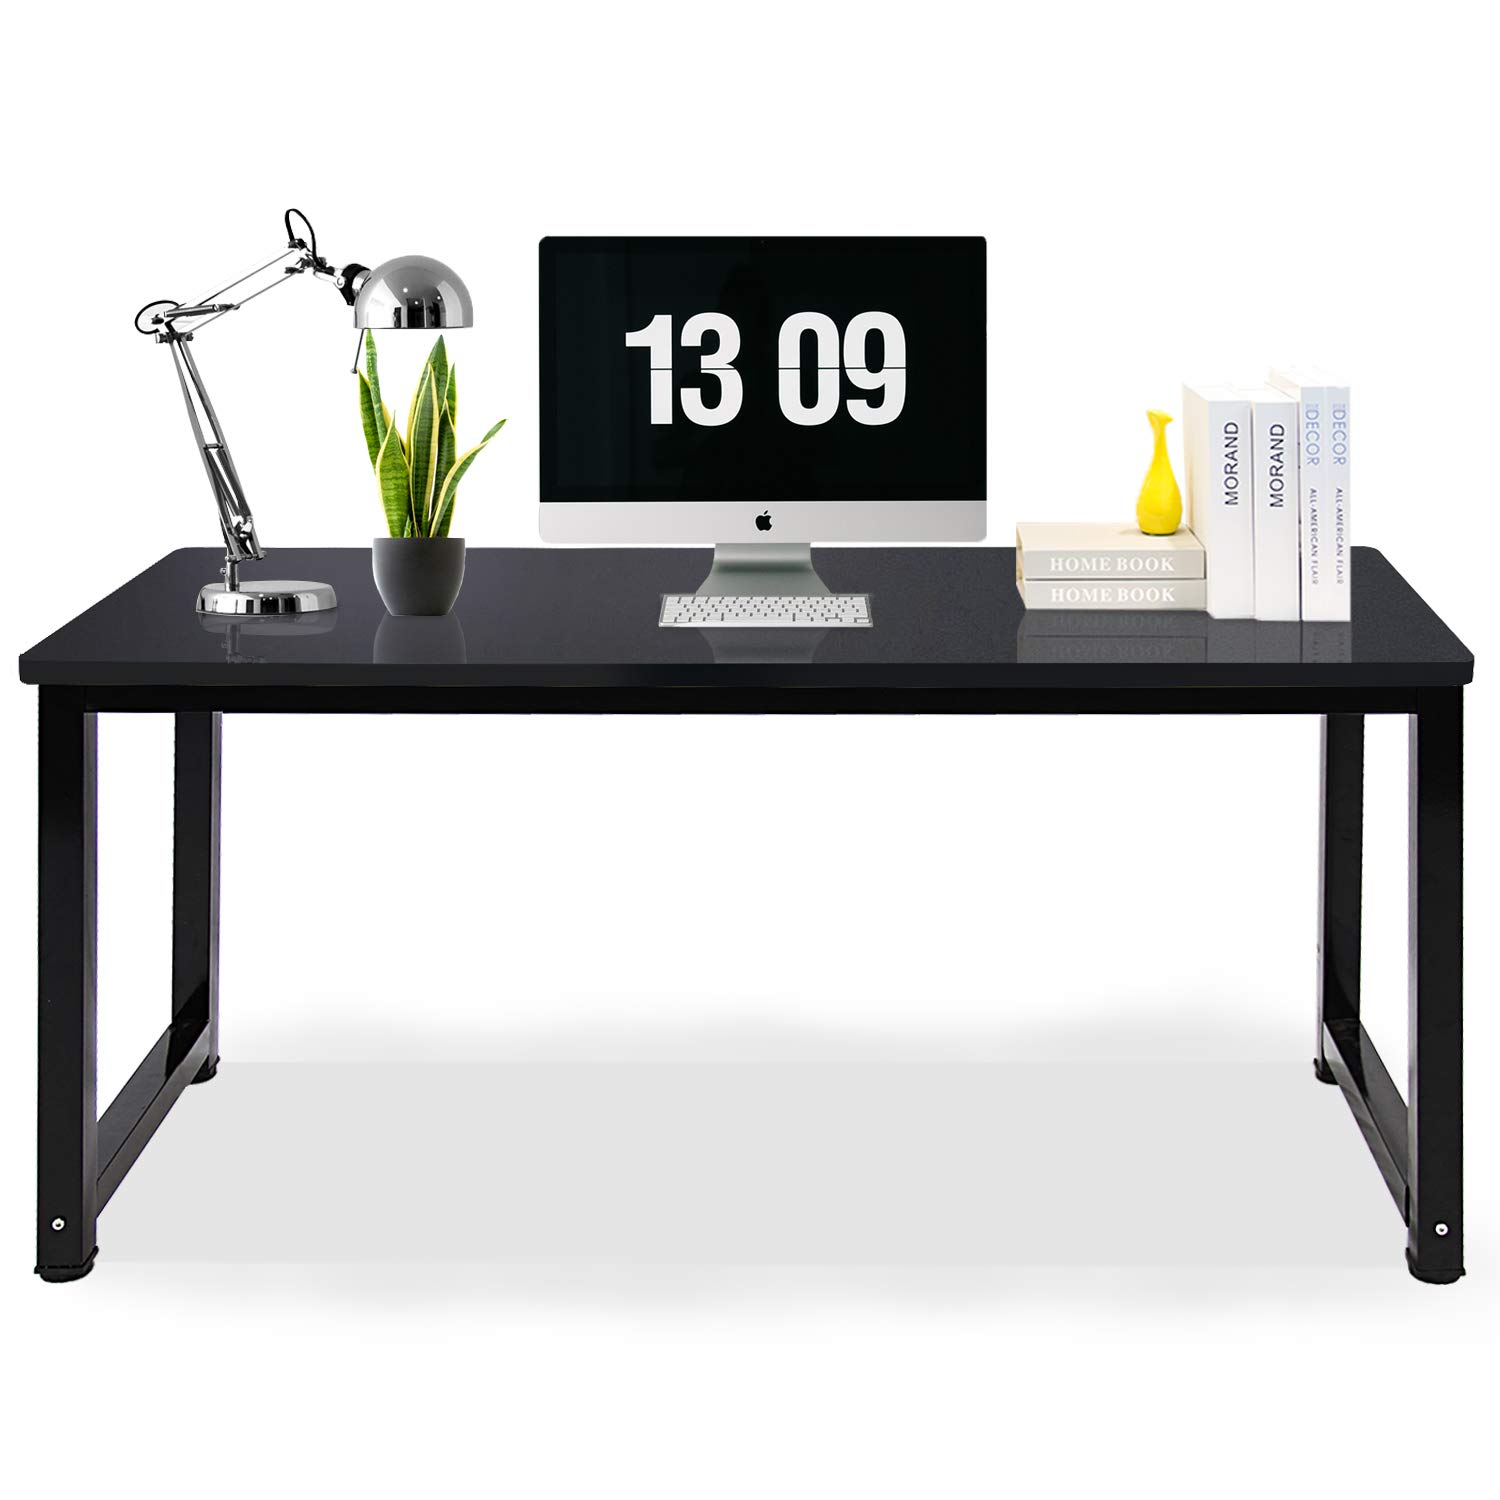 Jerry & Maggie - Professional Office Desk Wood & Steel Table Modern Plain Lap Desk with Rectangular Legs Computer Desk Personal Working Space - Black | Length 55.2''